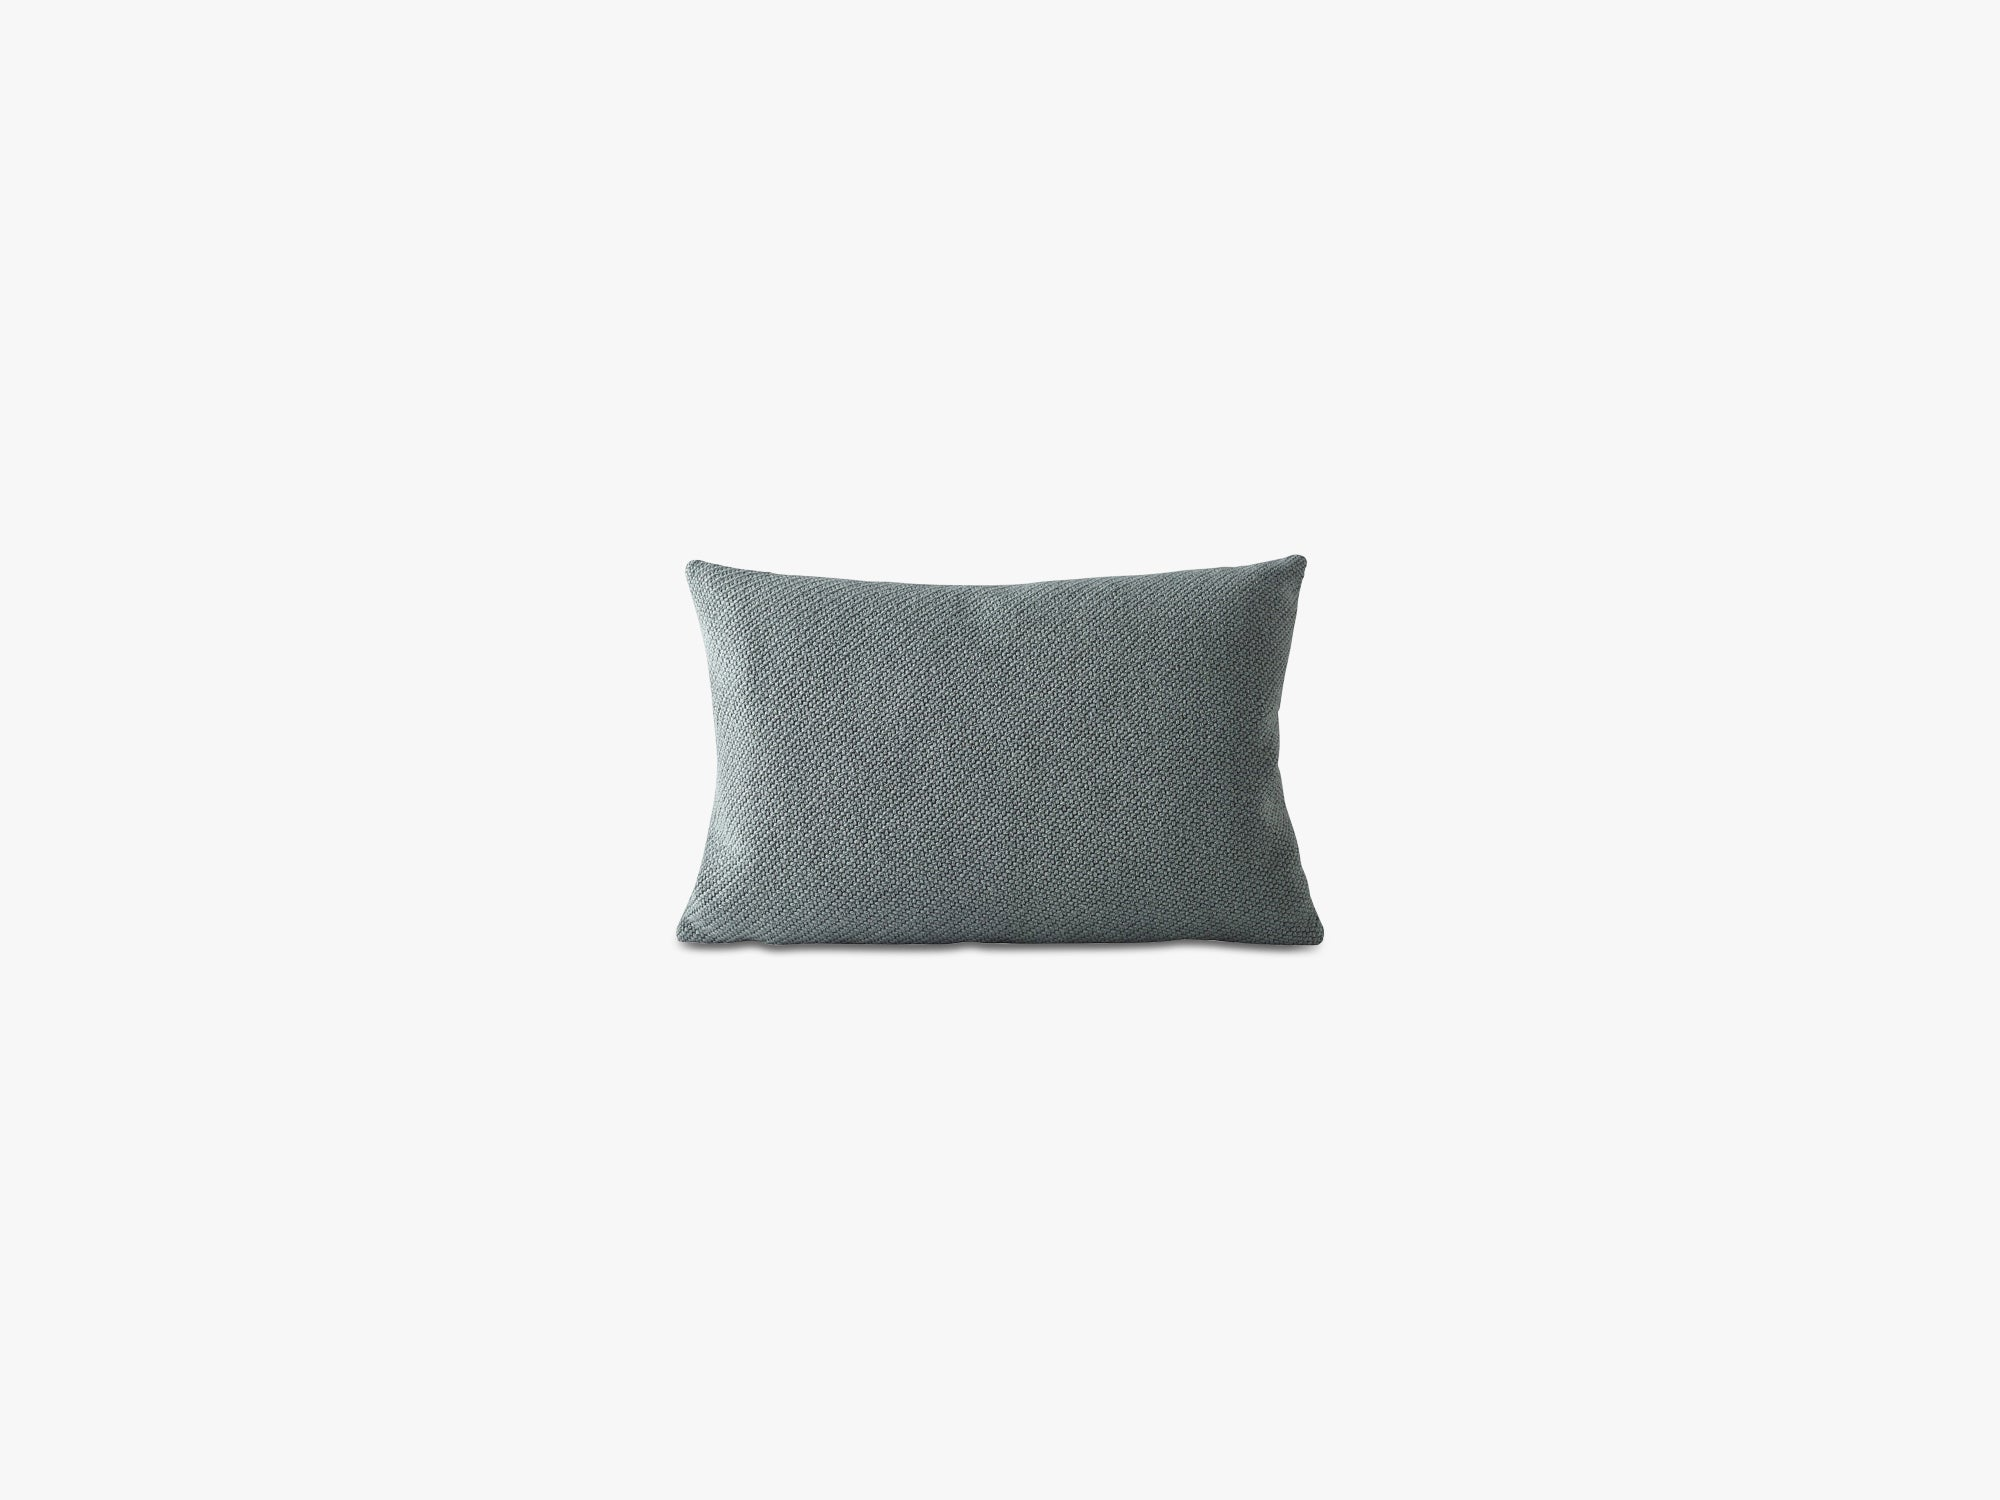 Mingle Cushion / 40 X 60, 40 x 60 - Petroleum fra Muuto